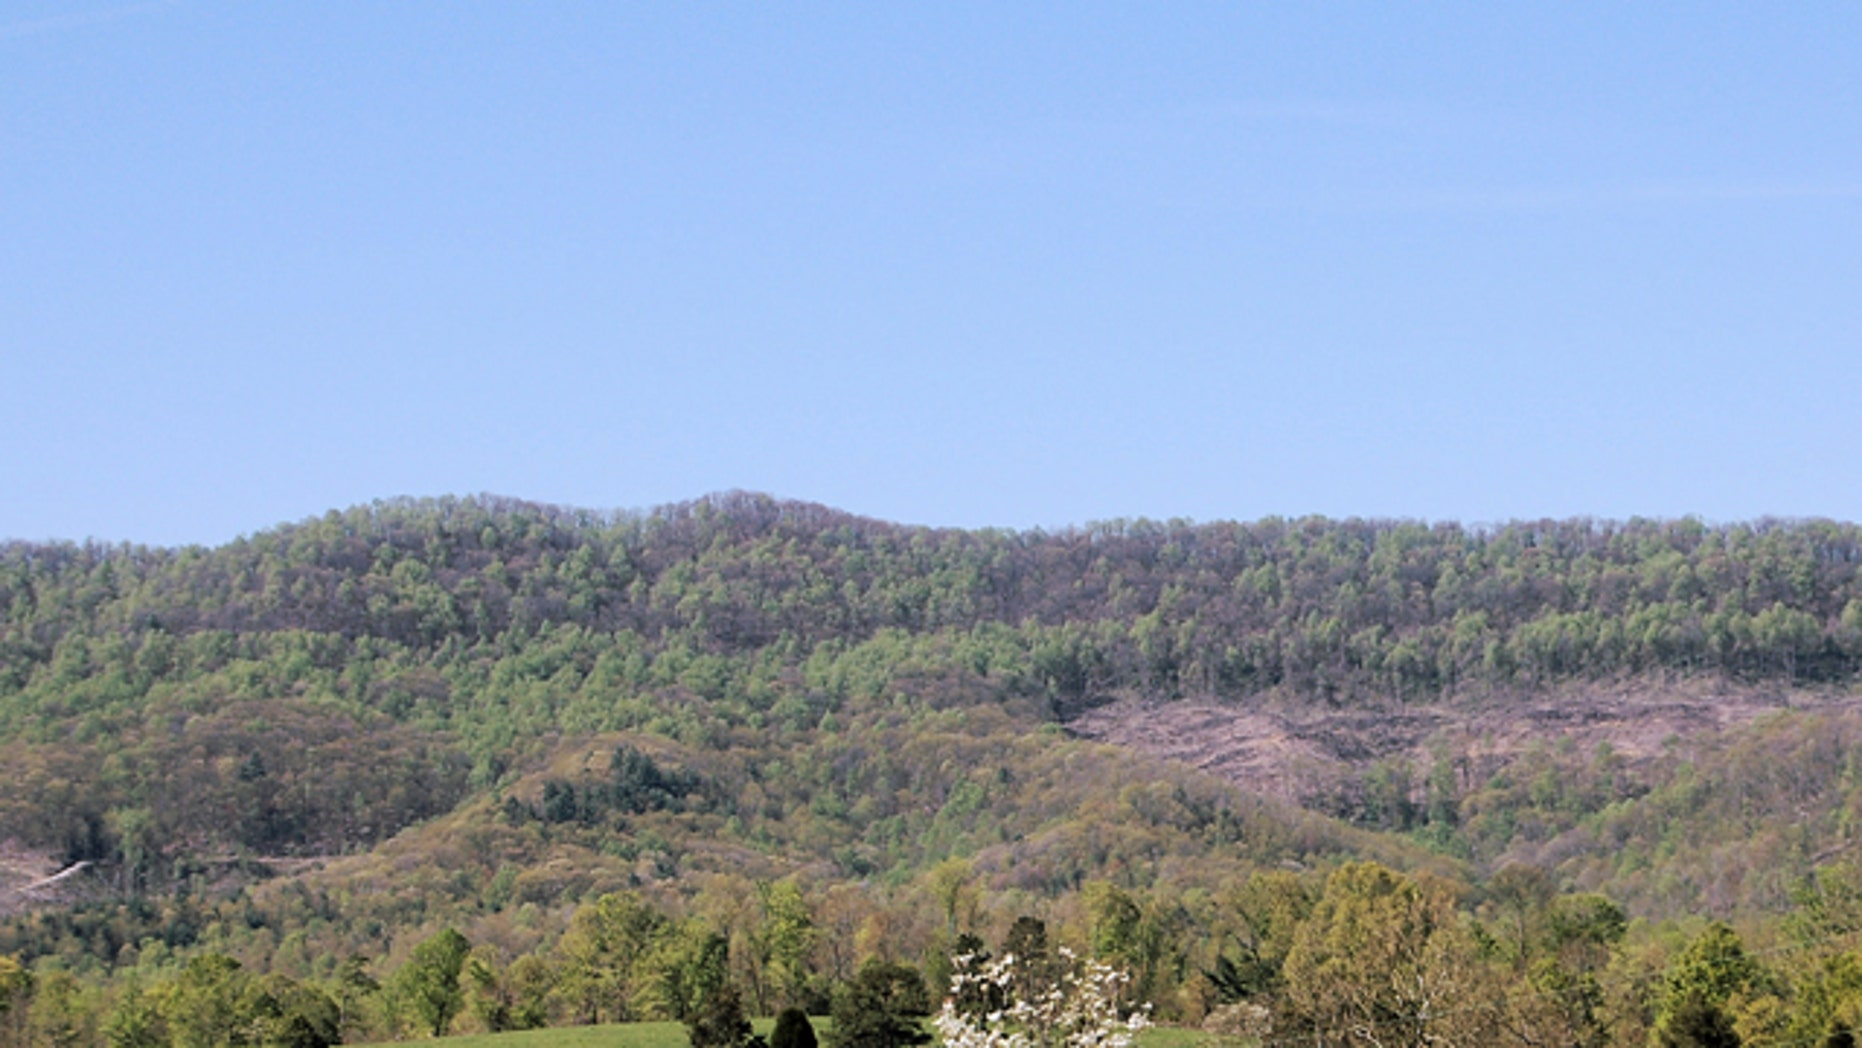 An undated photo provided by the University of Tennessee shows Wilson Mountain in the Cumberland Forest, a state-owned research area used by the University of Tennessee.